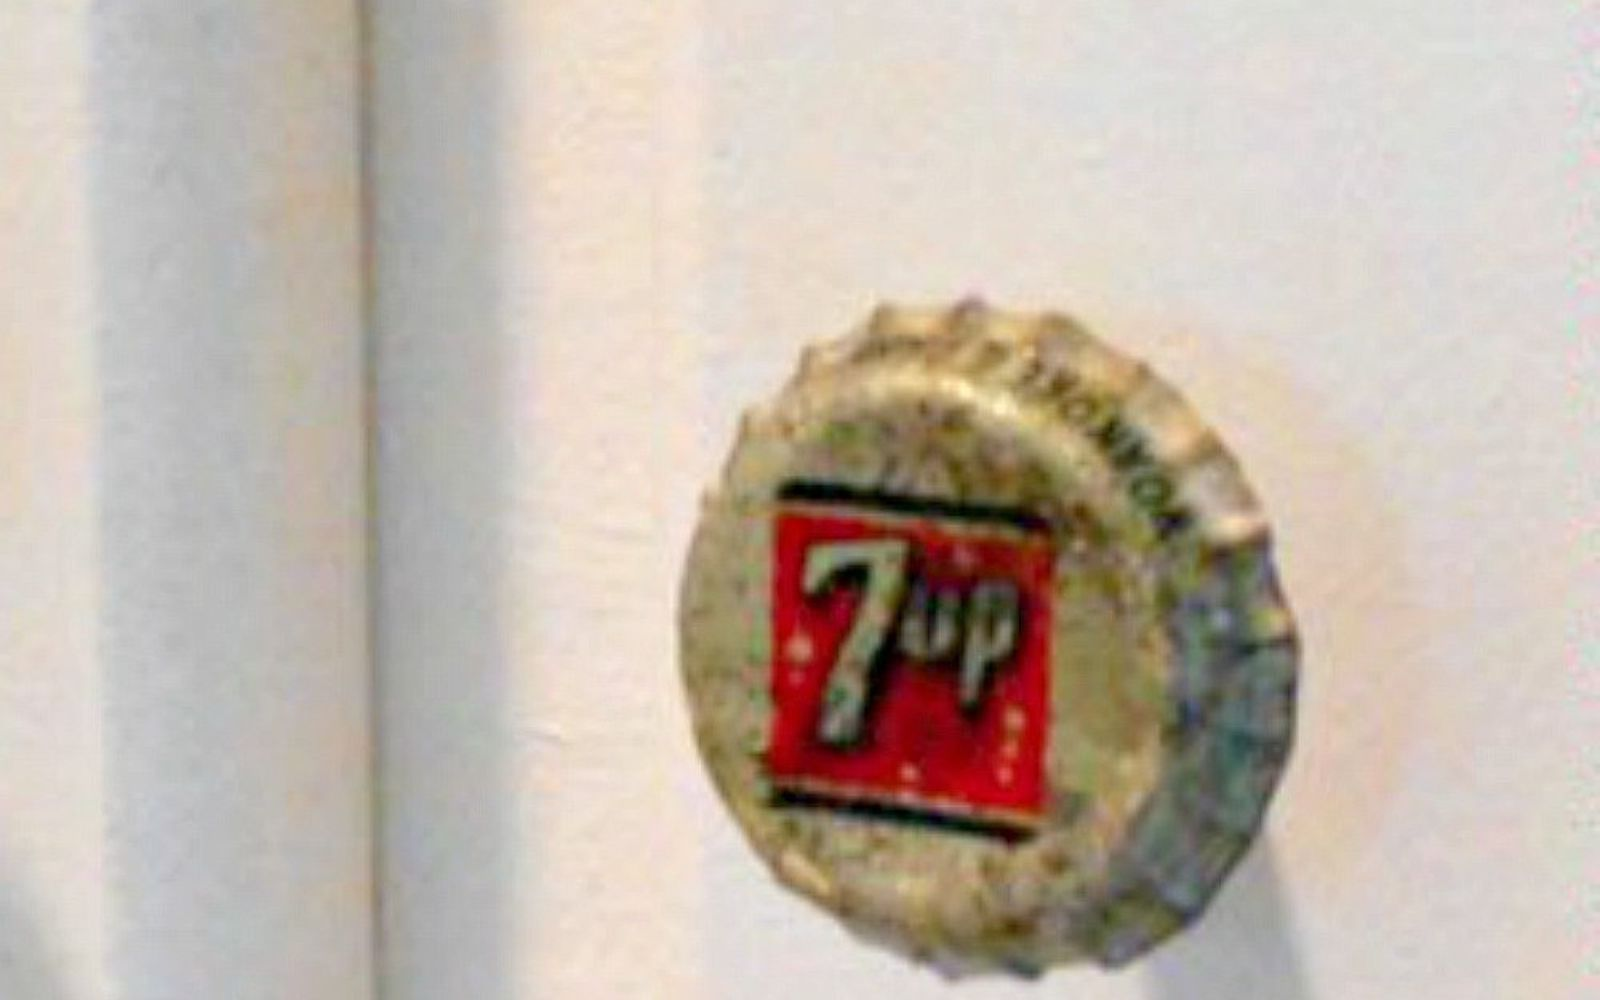 s save your bottle caps for these x crazy cool ideas, A vintage chic kitchen cabinet knob